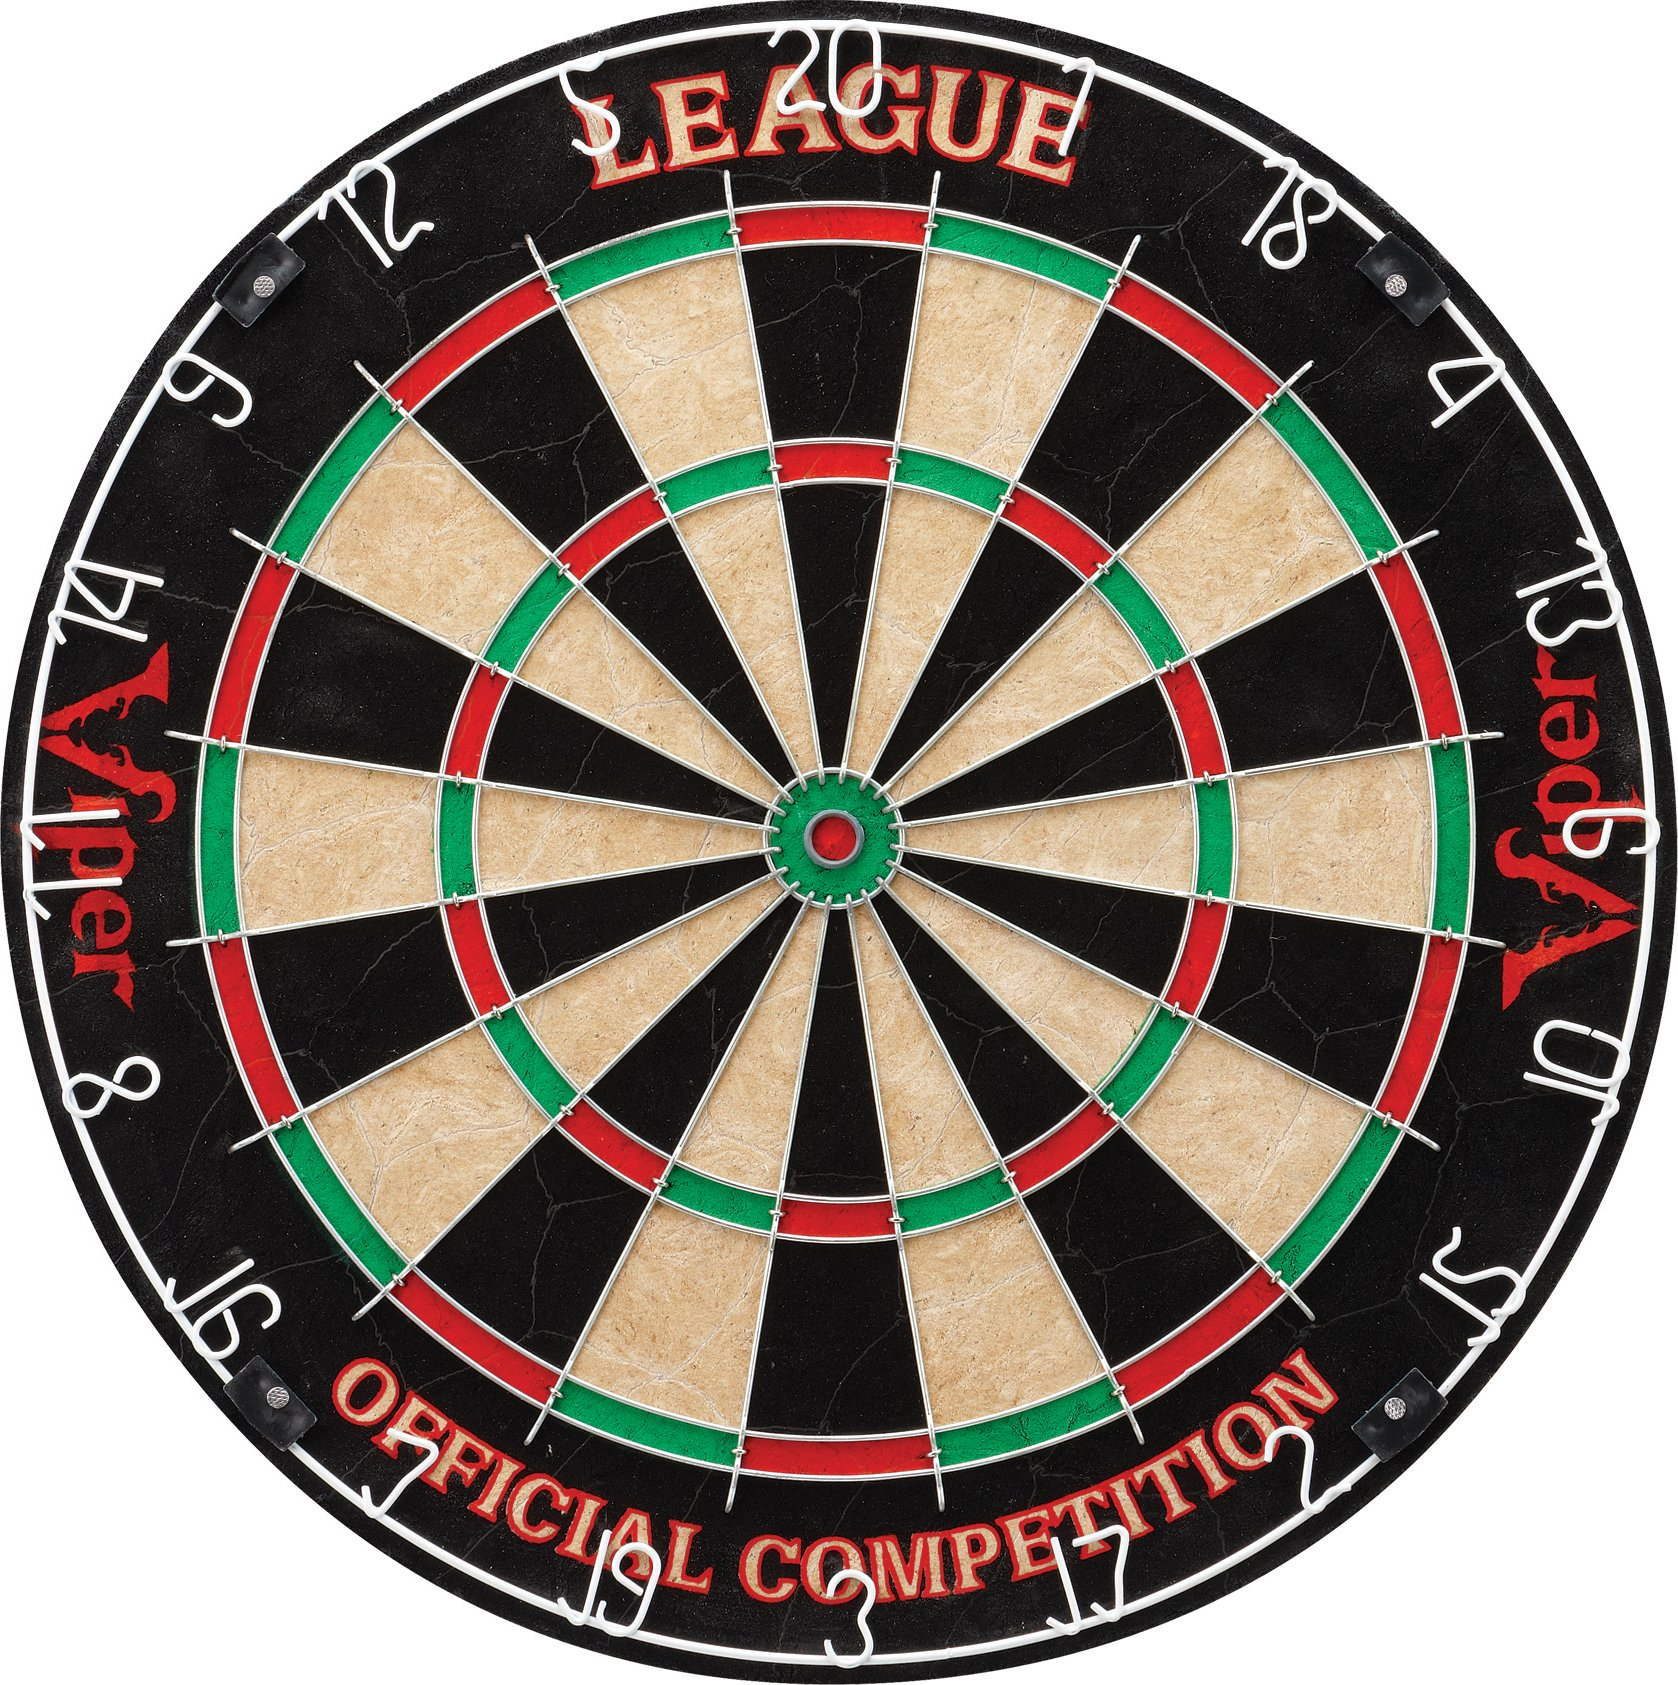 Viper League Sisal/Bristle Steel Tip Dartboard with Staple-Free Bullseye by Viper by GLD Products